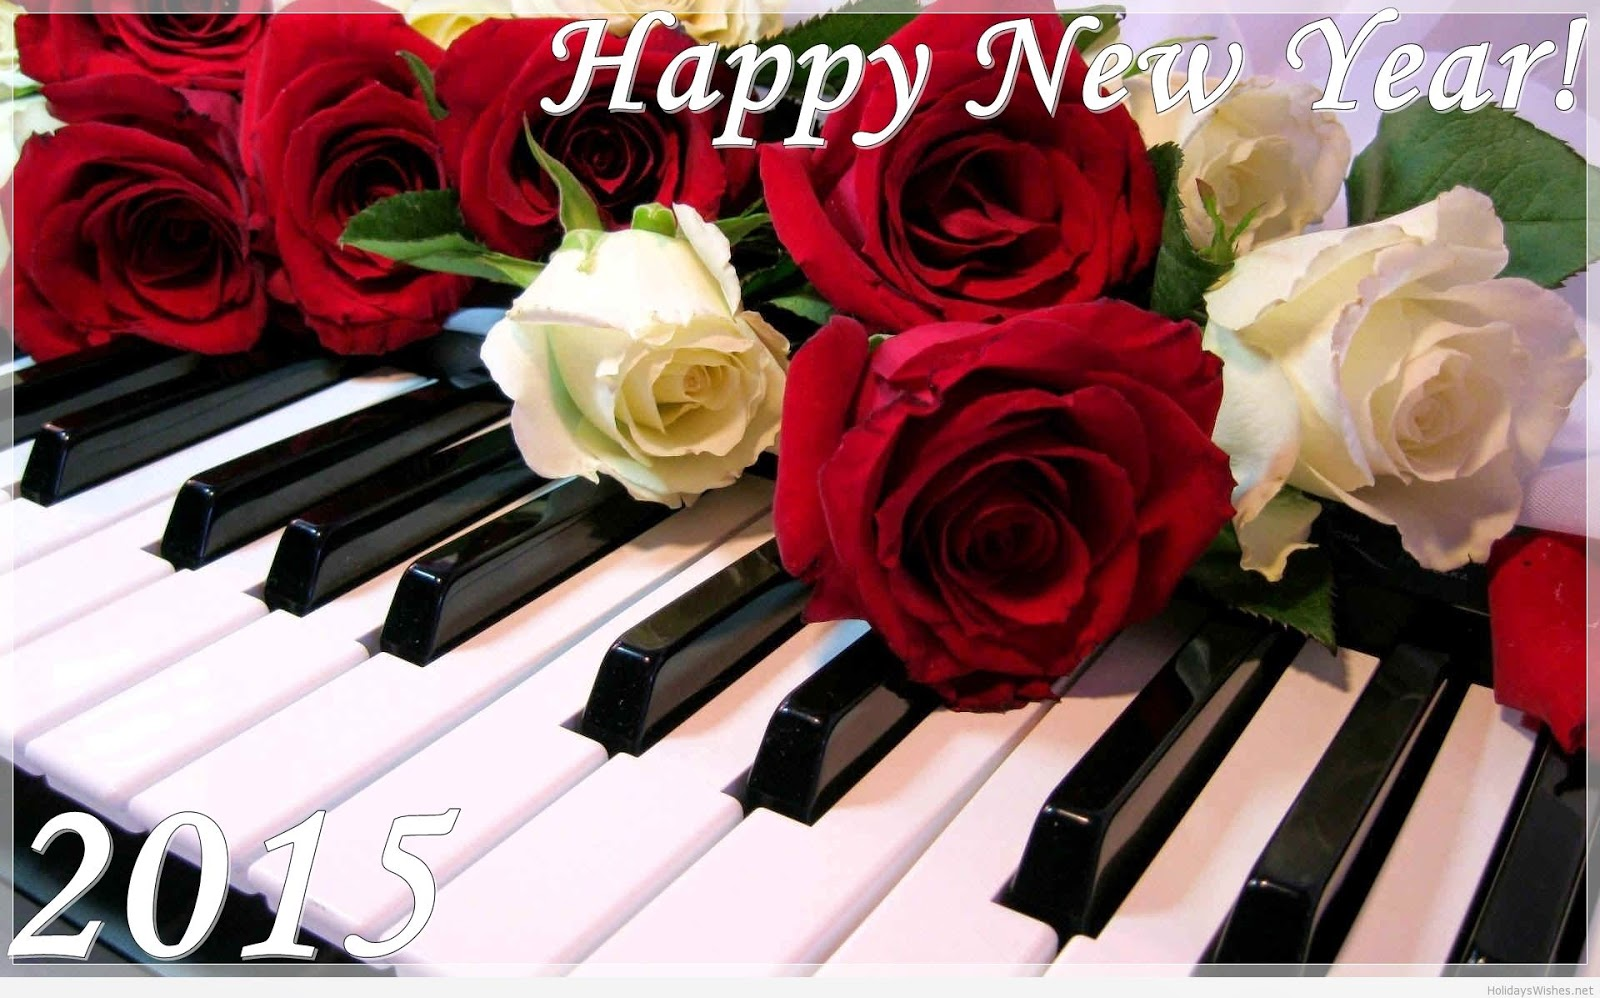 Happy New Year 2015 Rose Photo Free Download